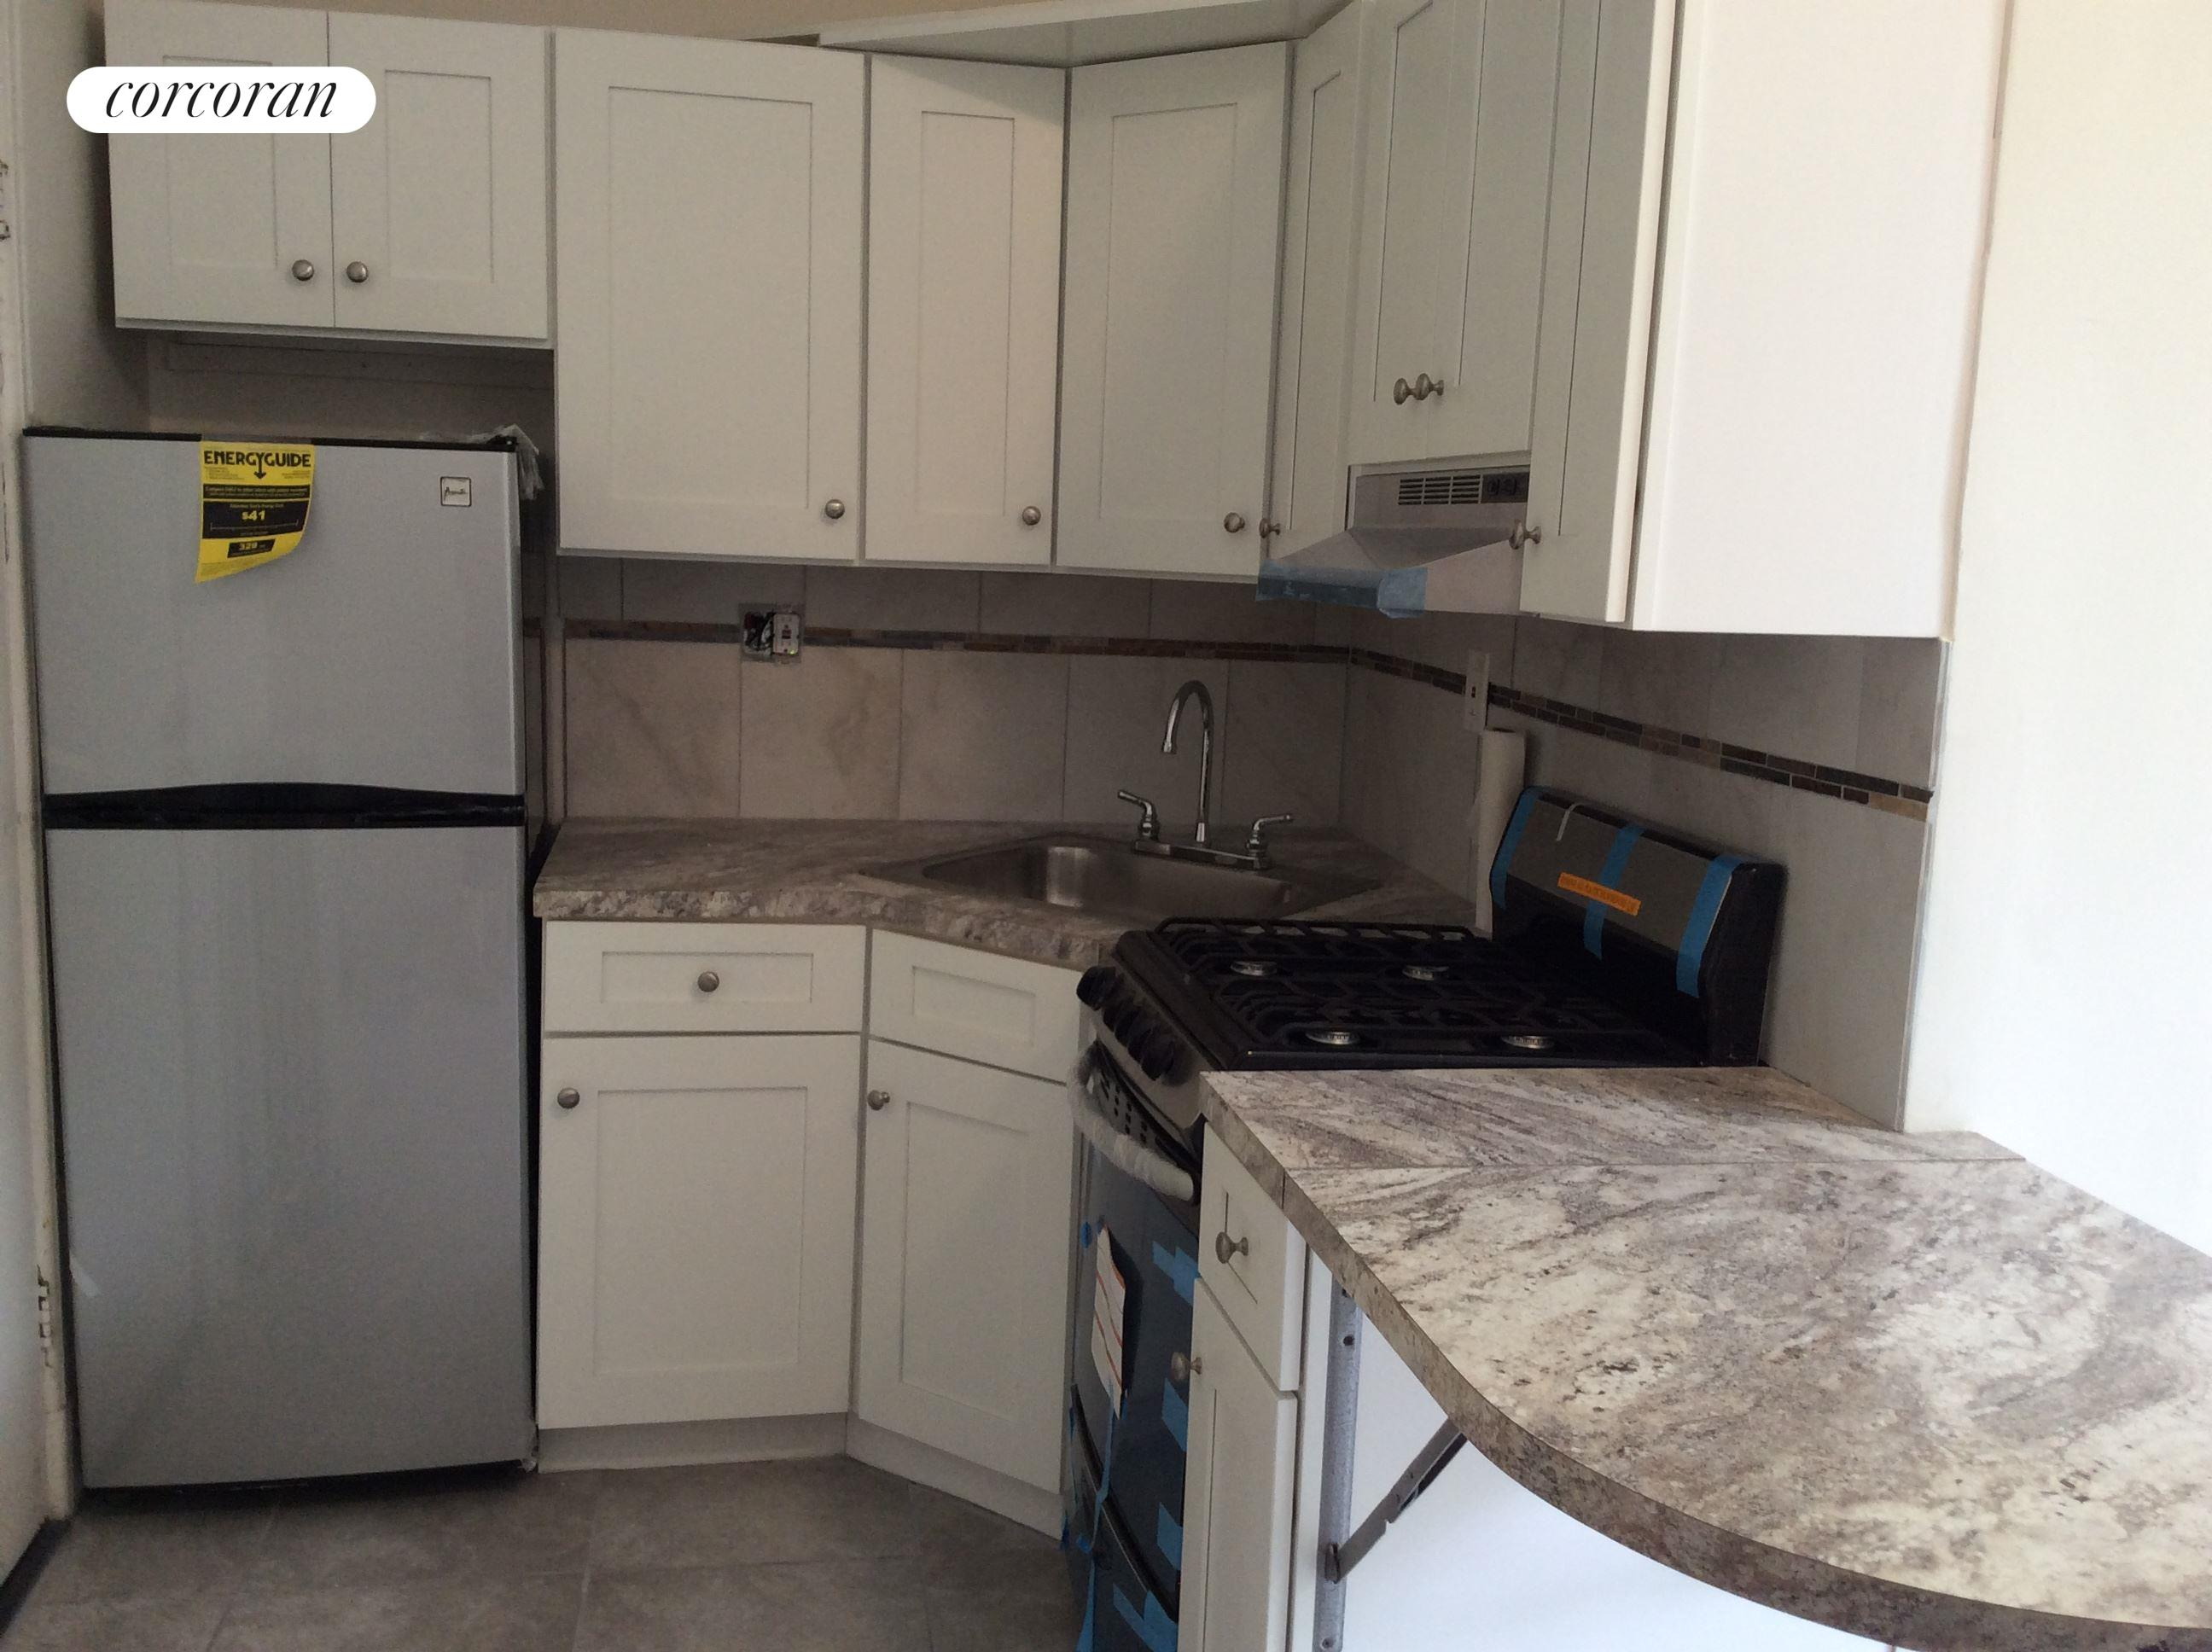 250 Saint Marks Avenue, 2nd Floor, Kitchen